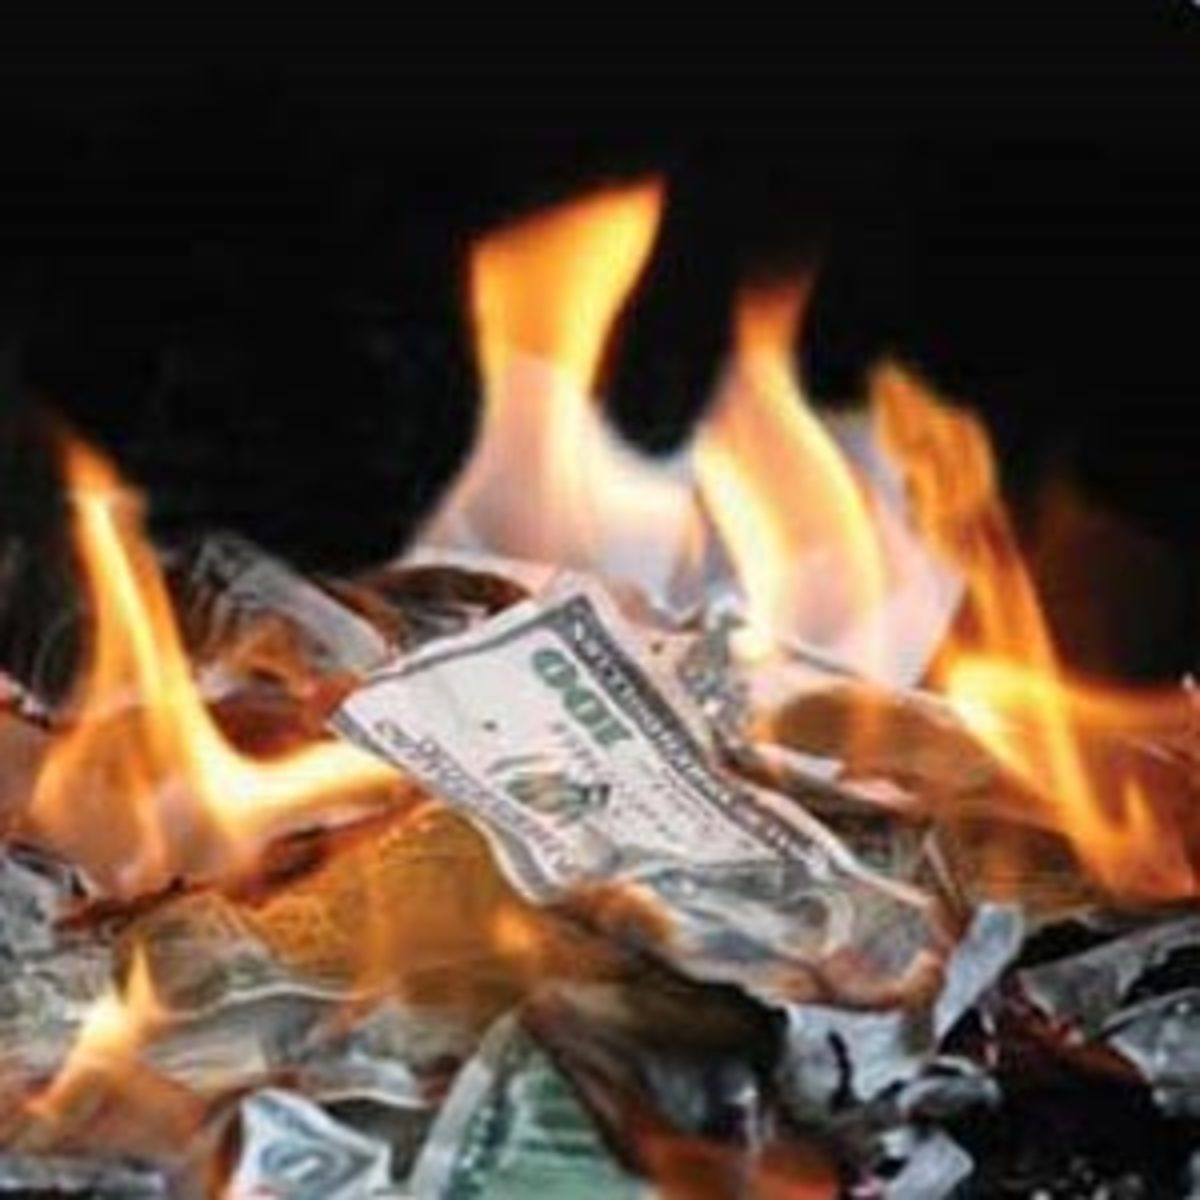 Are you burning money?